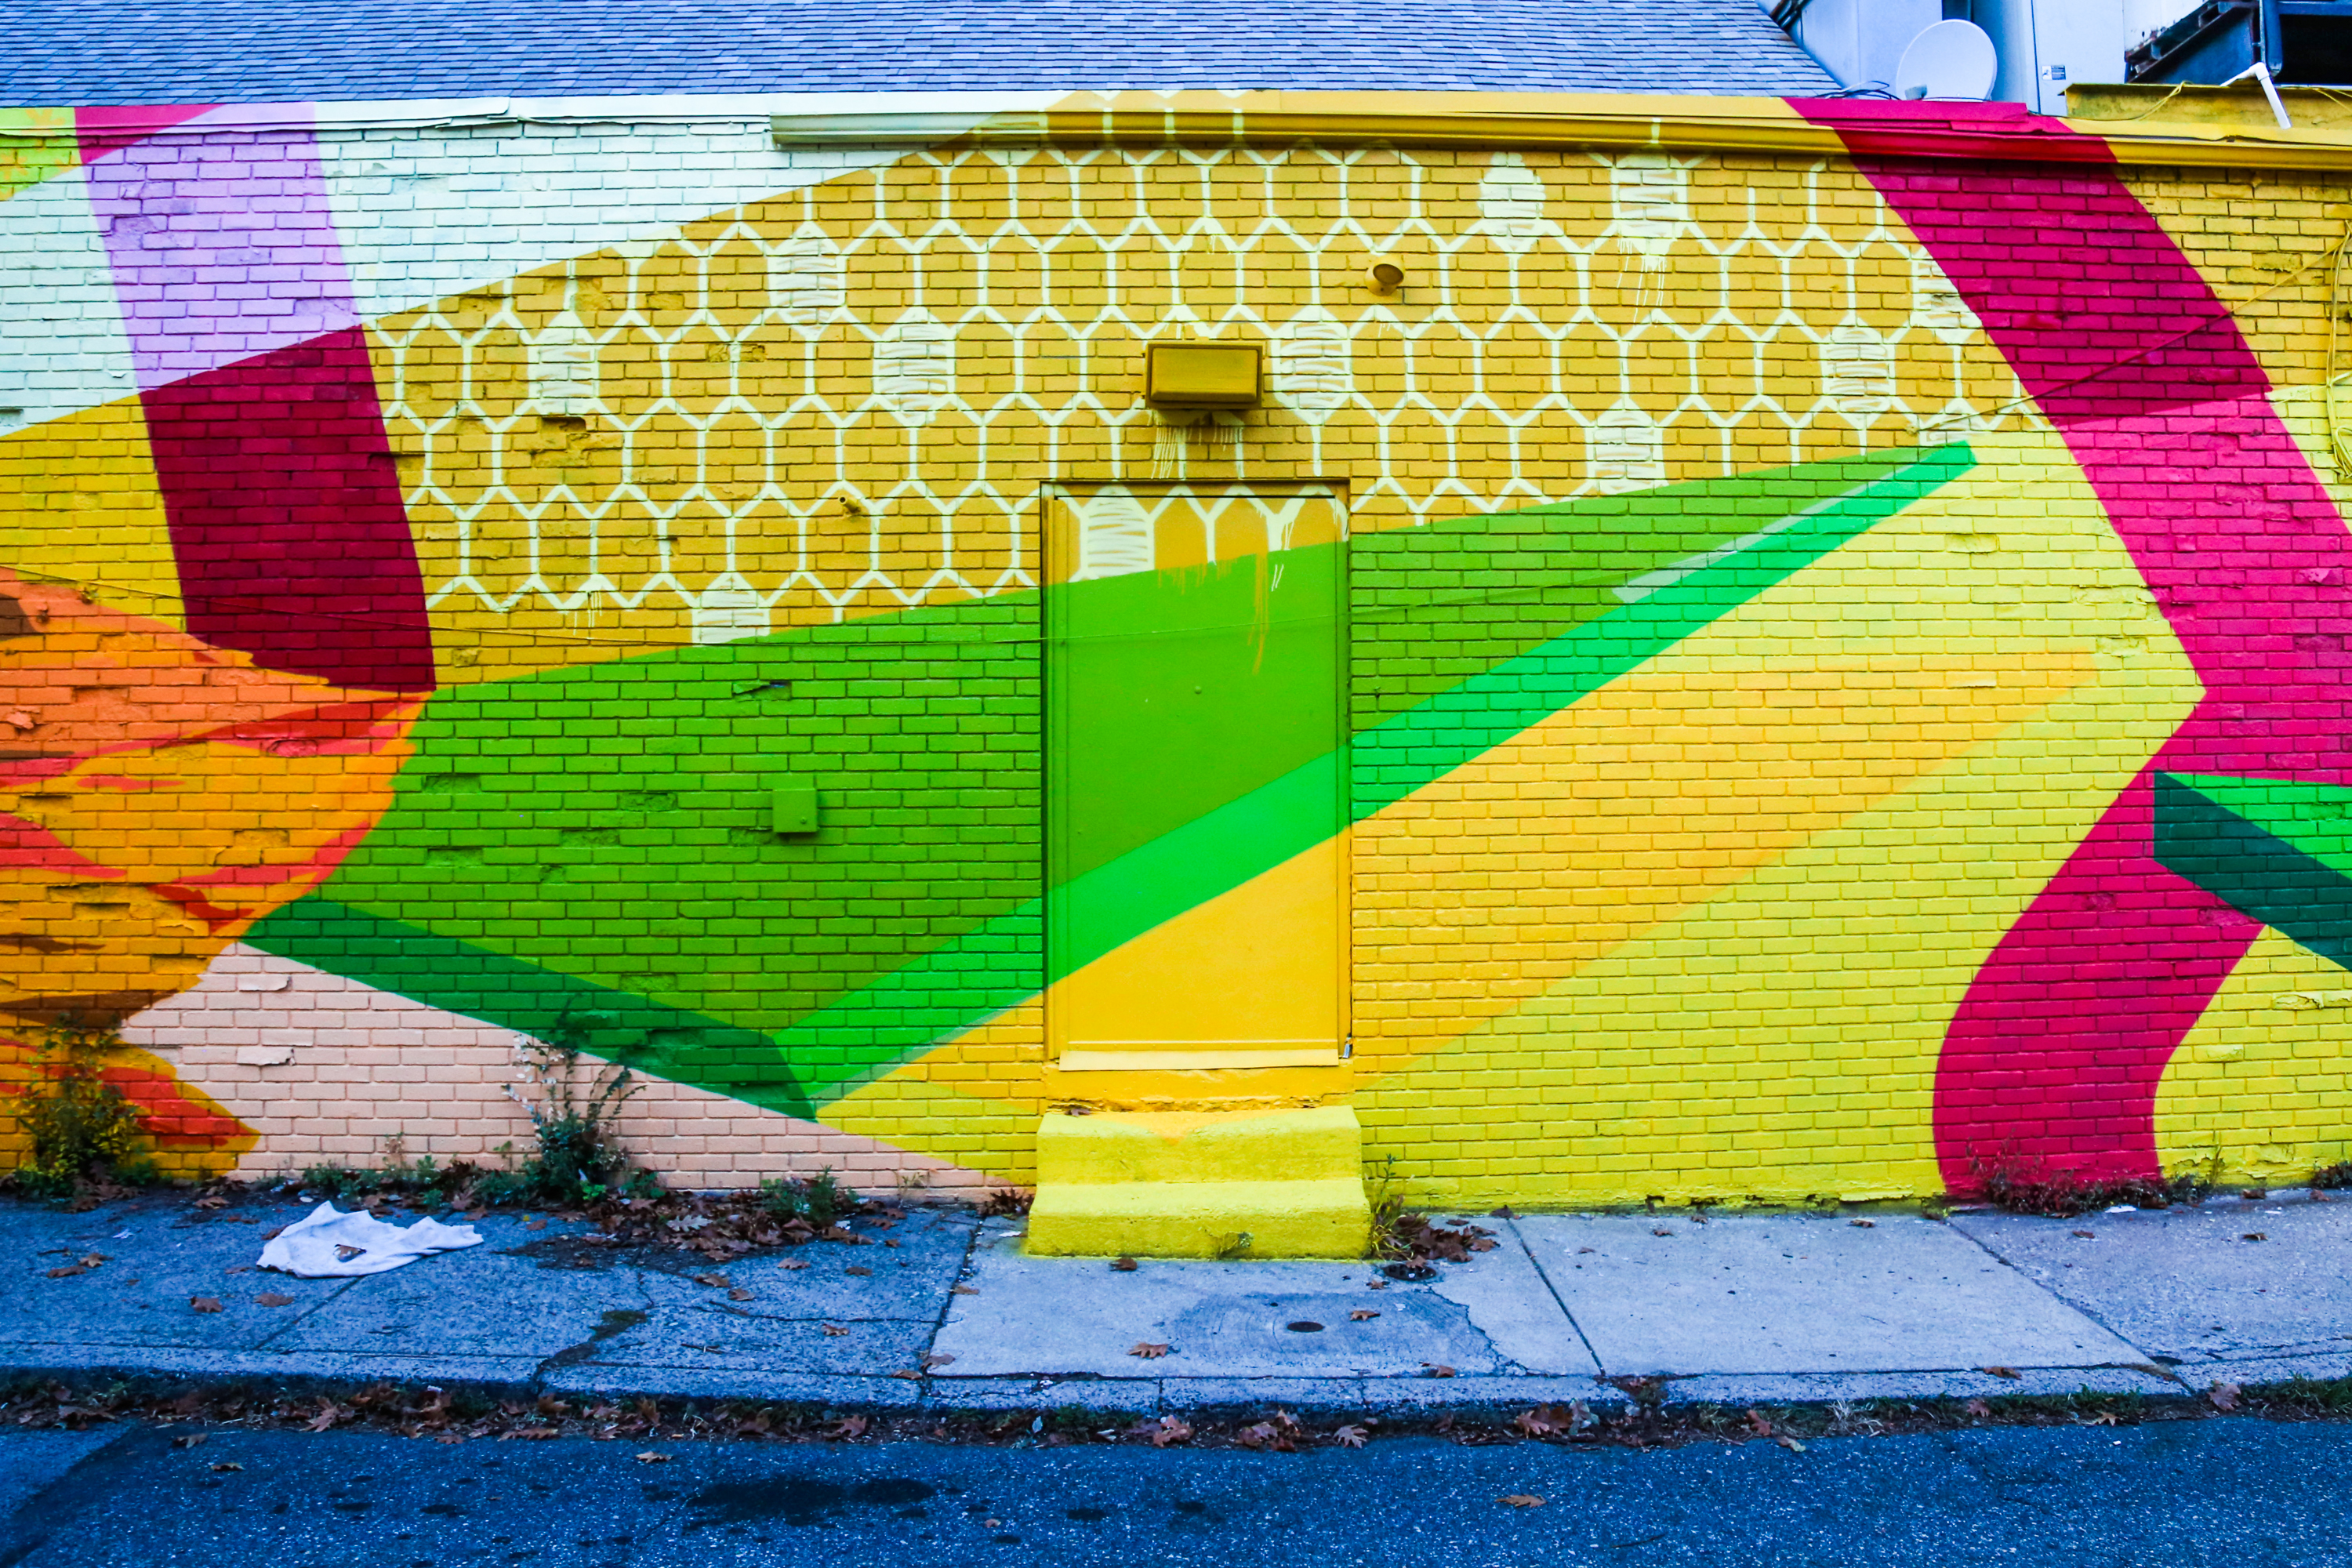 Brilliant New NTEL Mural in South Philly | Streets Dept